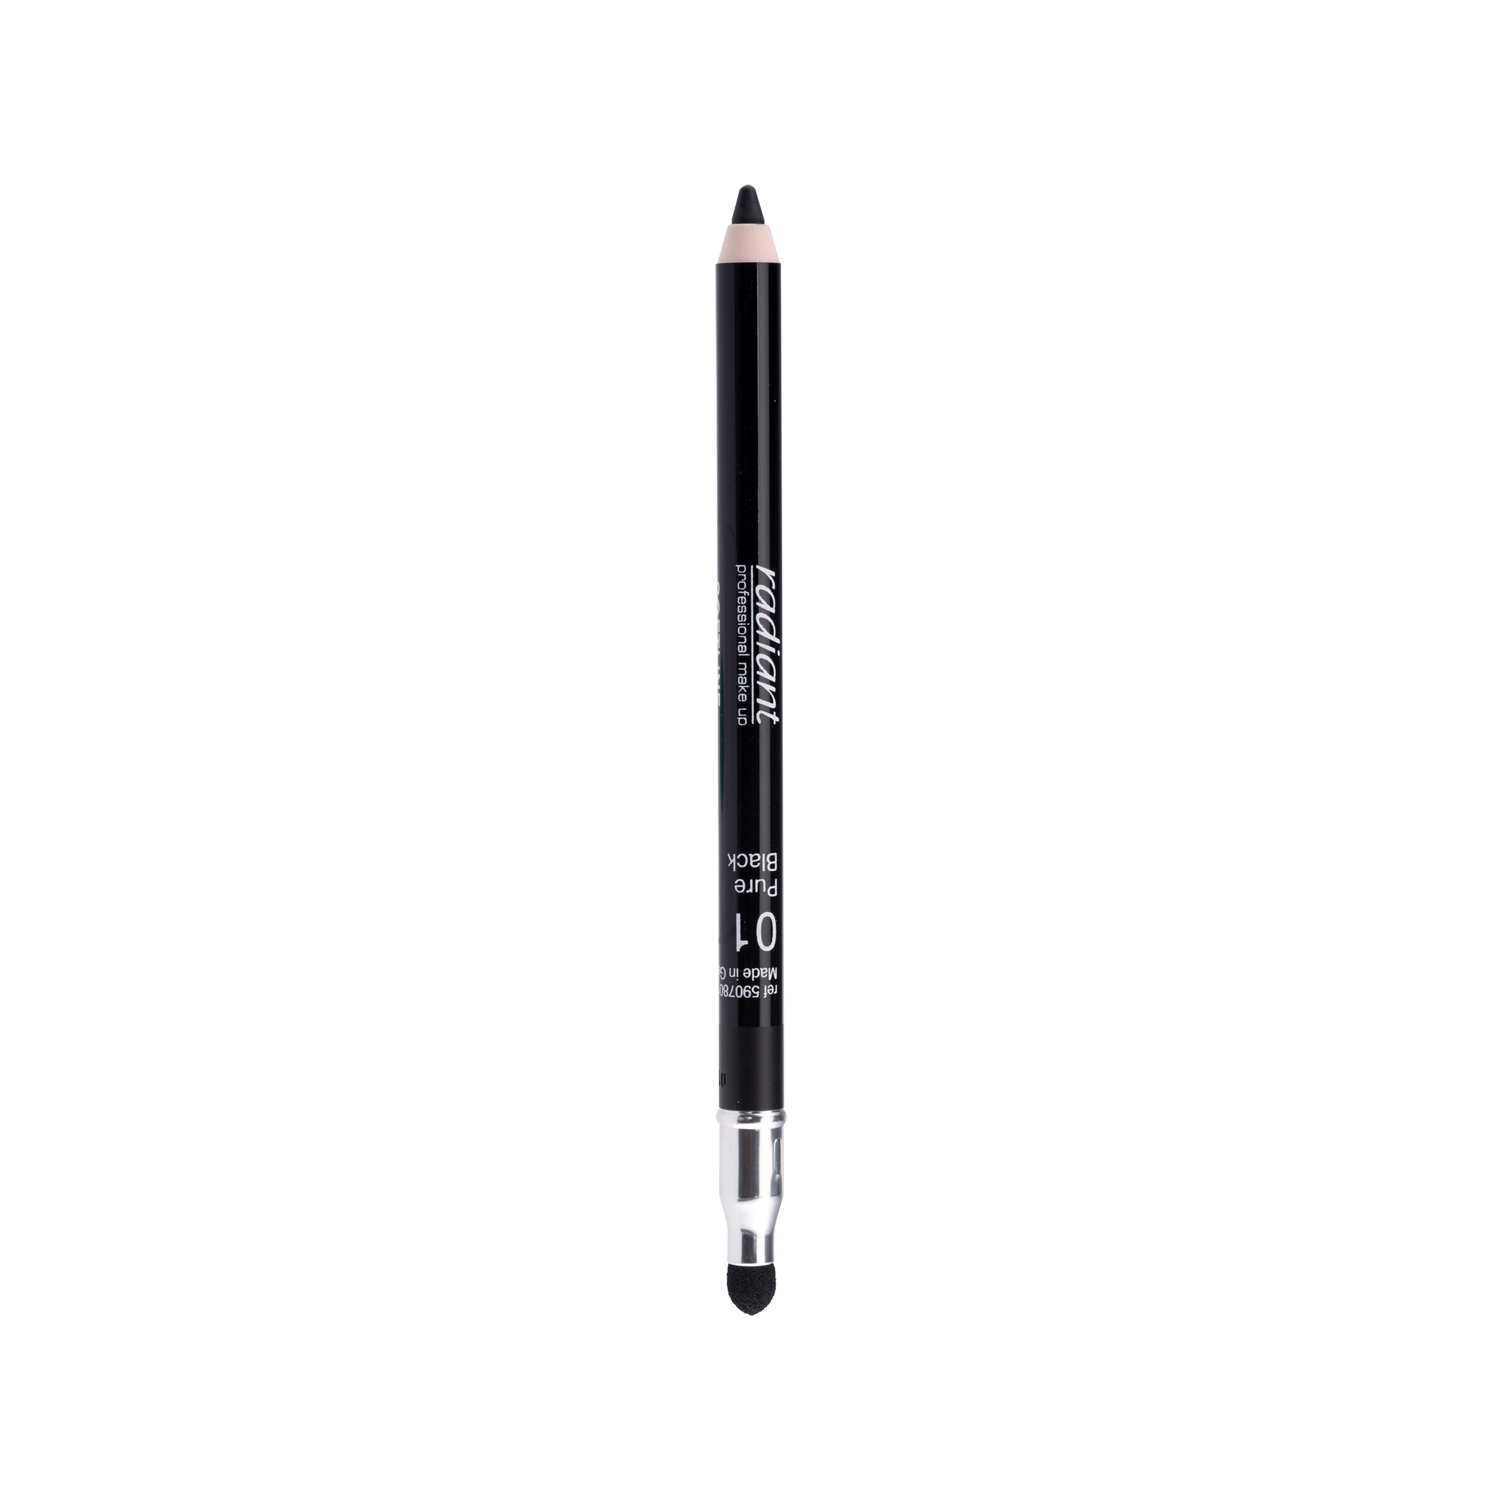 SOFTLINE WATERPROOF EYE PENCIL